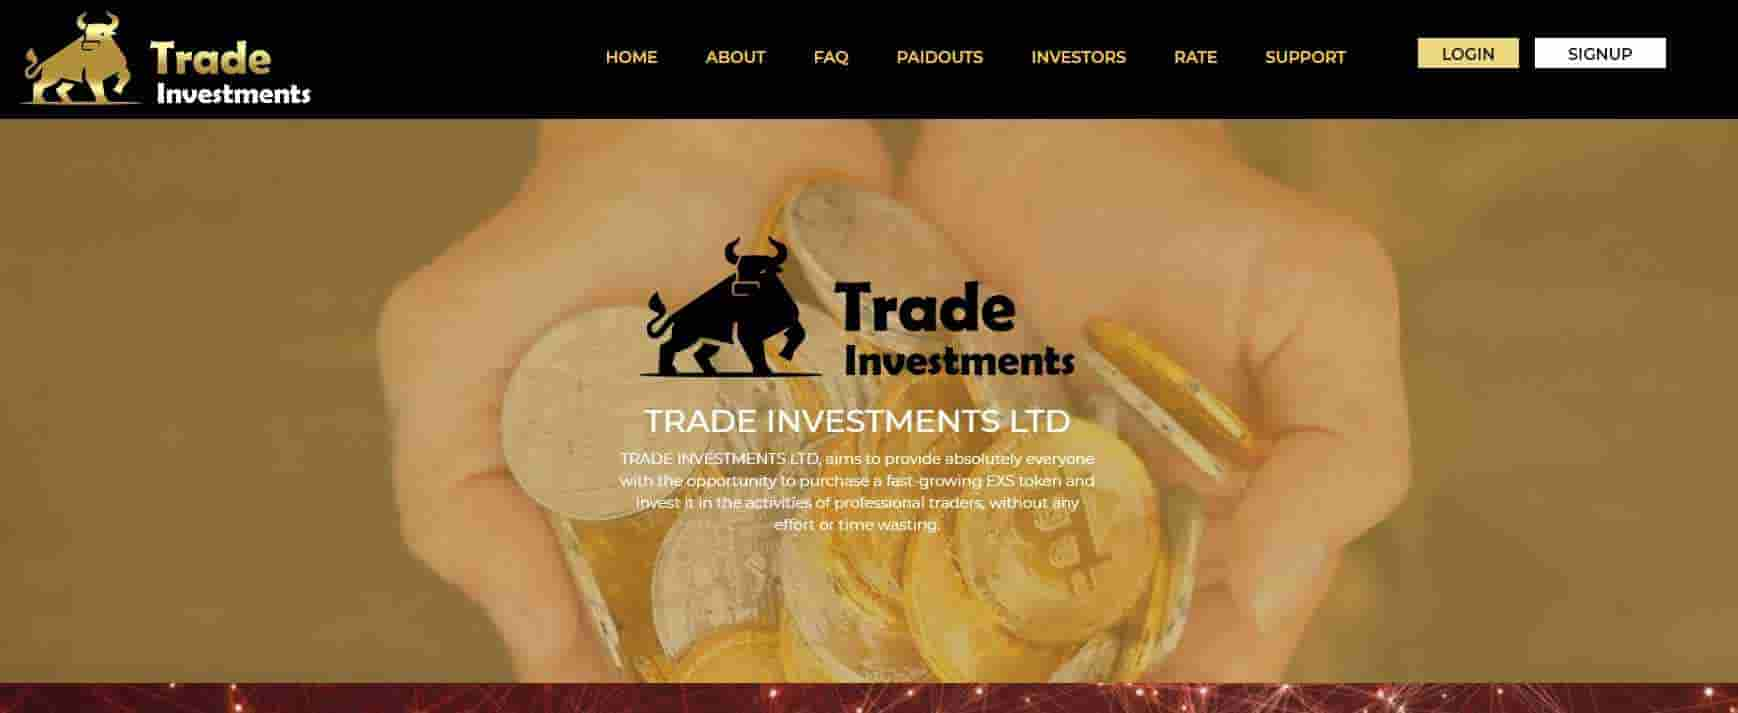 TRADE INVESTMENTS